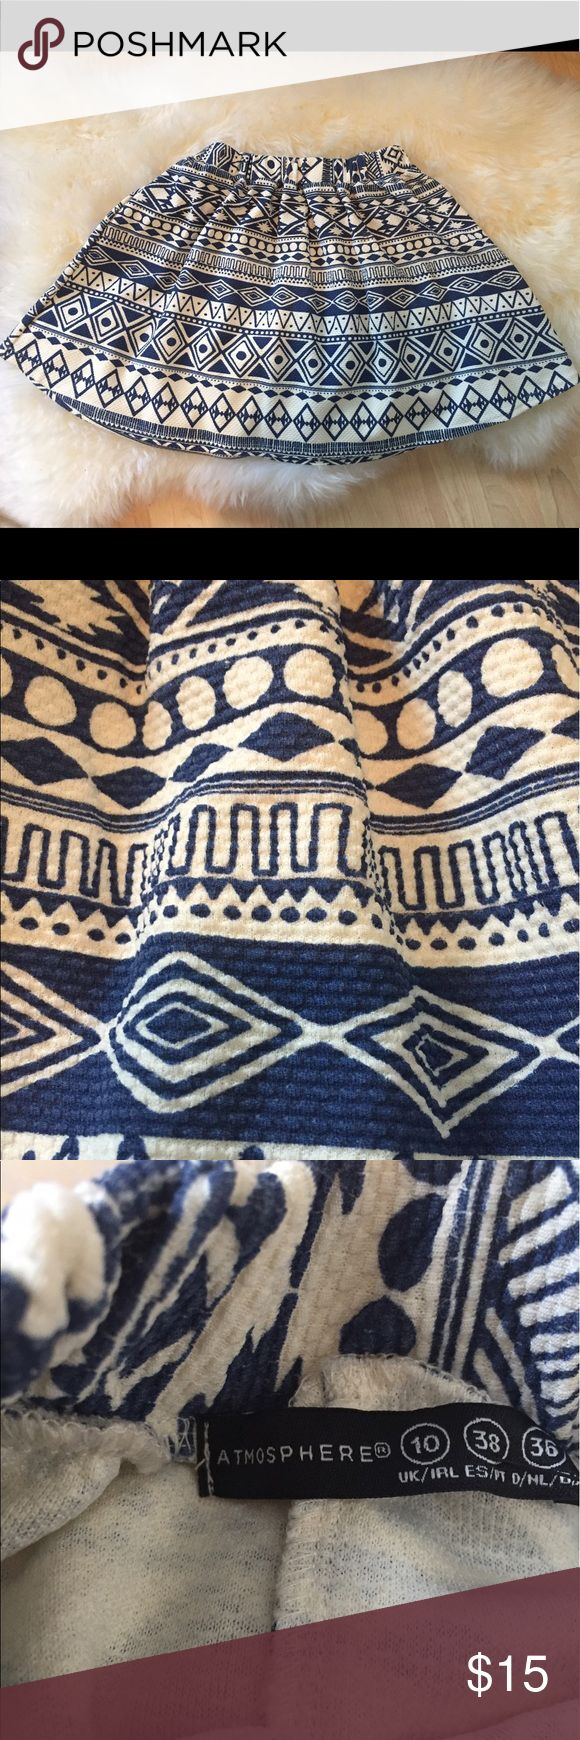 """Tribal Print Skirt By Atmosphere Adorable blue and white Atmosphere Skirt in trendy Aztec/tribal print!  This cute skirt is ready for spring and summer!  Elastic waistband for max comfort.  Measures 16.5"""" long and 12"""" wide at the waistband.  This skirt is a U.K. Size 10, which translates to a US size 8, but I think it runs a little small. Atmosphere Skirts Mini"""